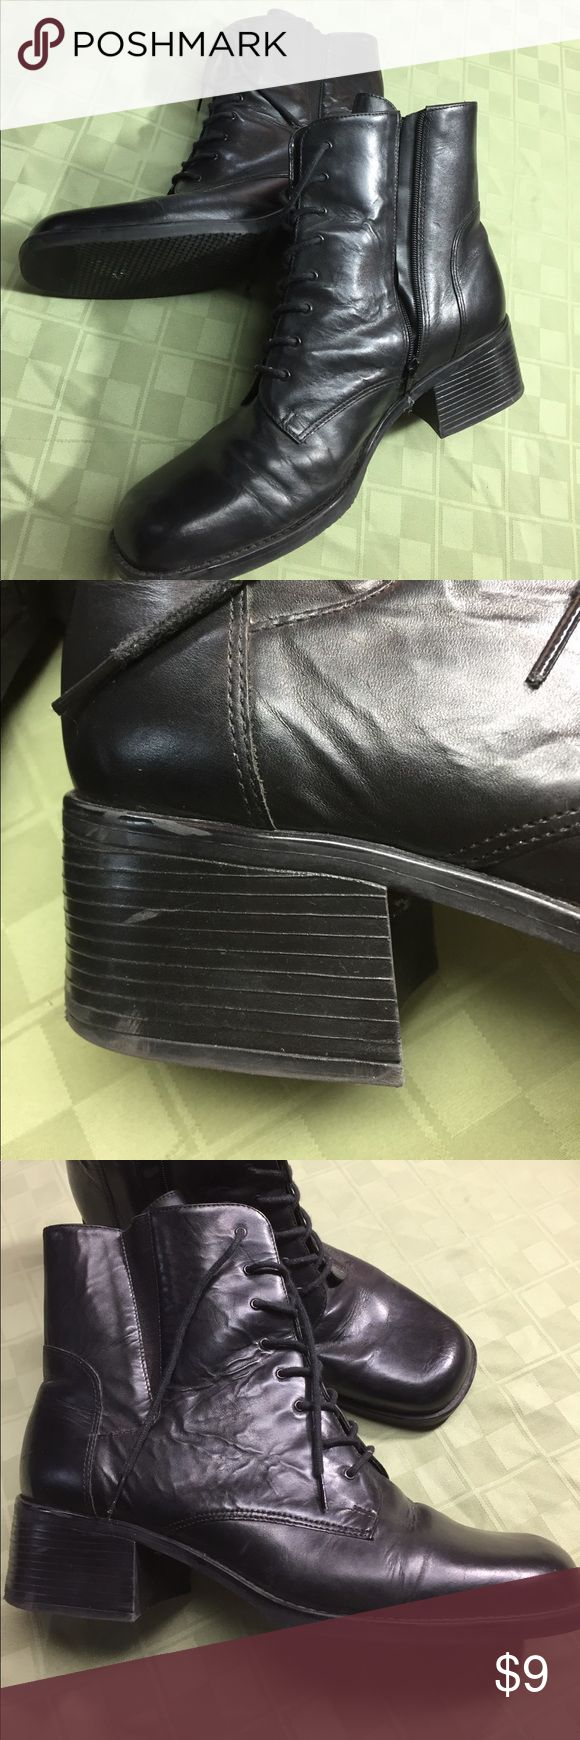 excellent condition ankle boots Excellent condition not been worn a lot Boston accent Shoes Ankle Boots & Booties